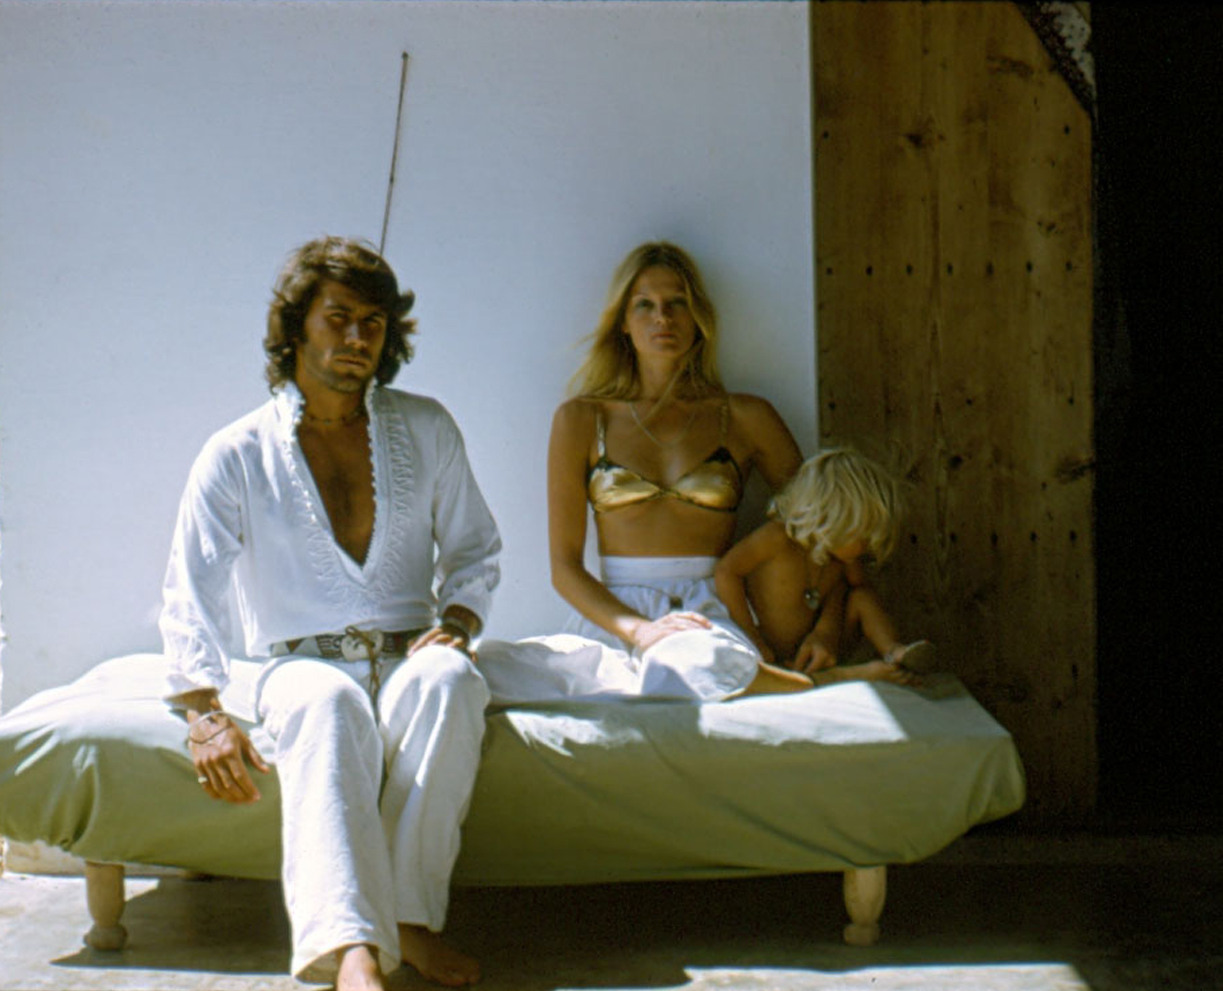 Willy Van Rooy in family self-portrait. Ibiza, 1970s. | fashion, model, 70s, Spain, Ibiza, travel, aesthetic, summer, gold swimsuit, lifestyle, bohemian, chic style, vintage | Allegory of Vanity